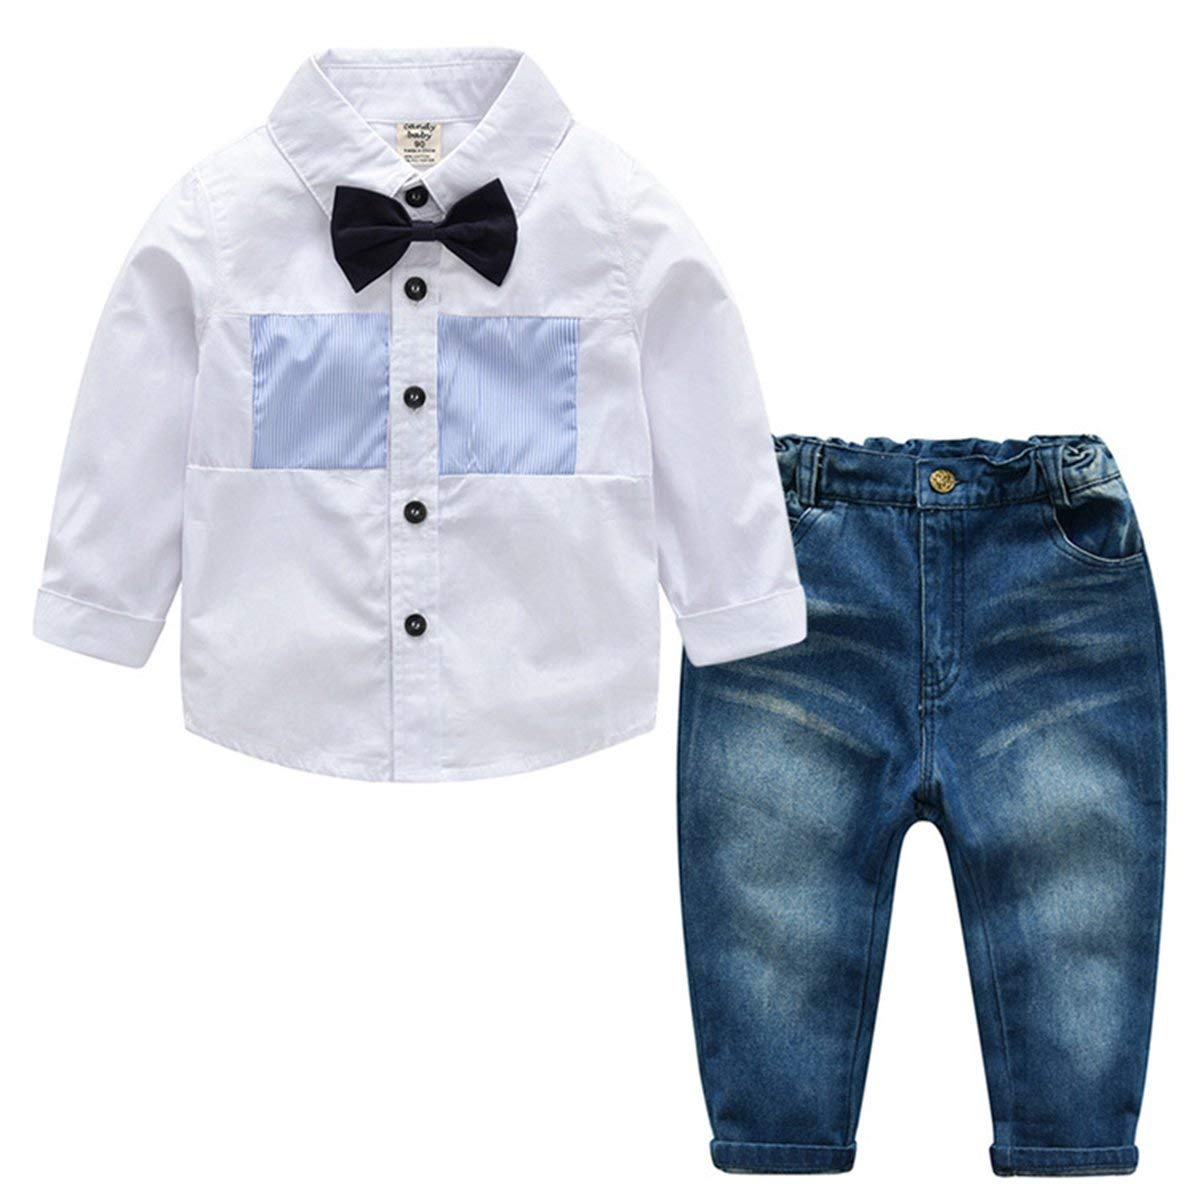 daqinghjxg New Summer Boys Clothing Sets Gentleman Baby Boy Clothes Shirt and Suspender Trousers